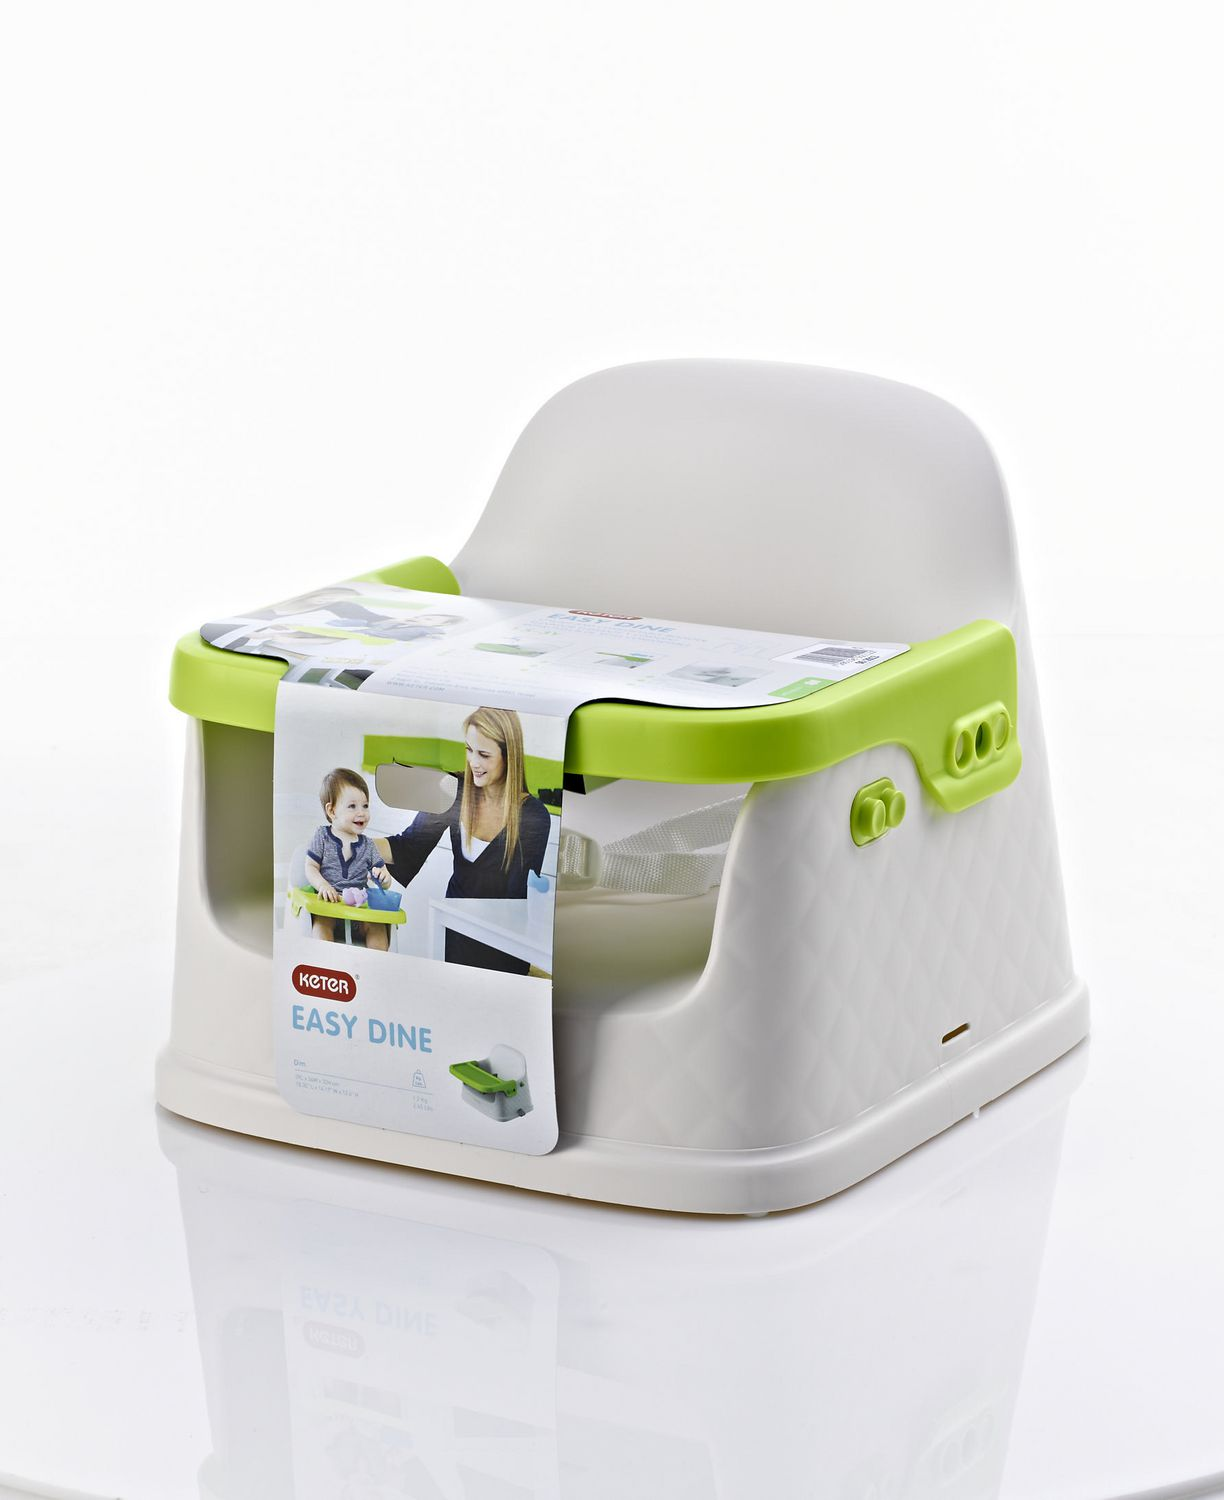 Keter Easy Dine Booster Seat Walmart Canada